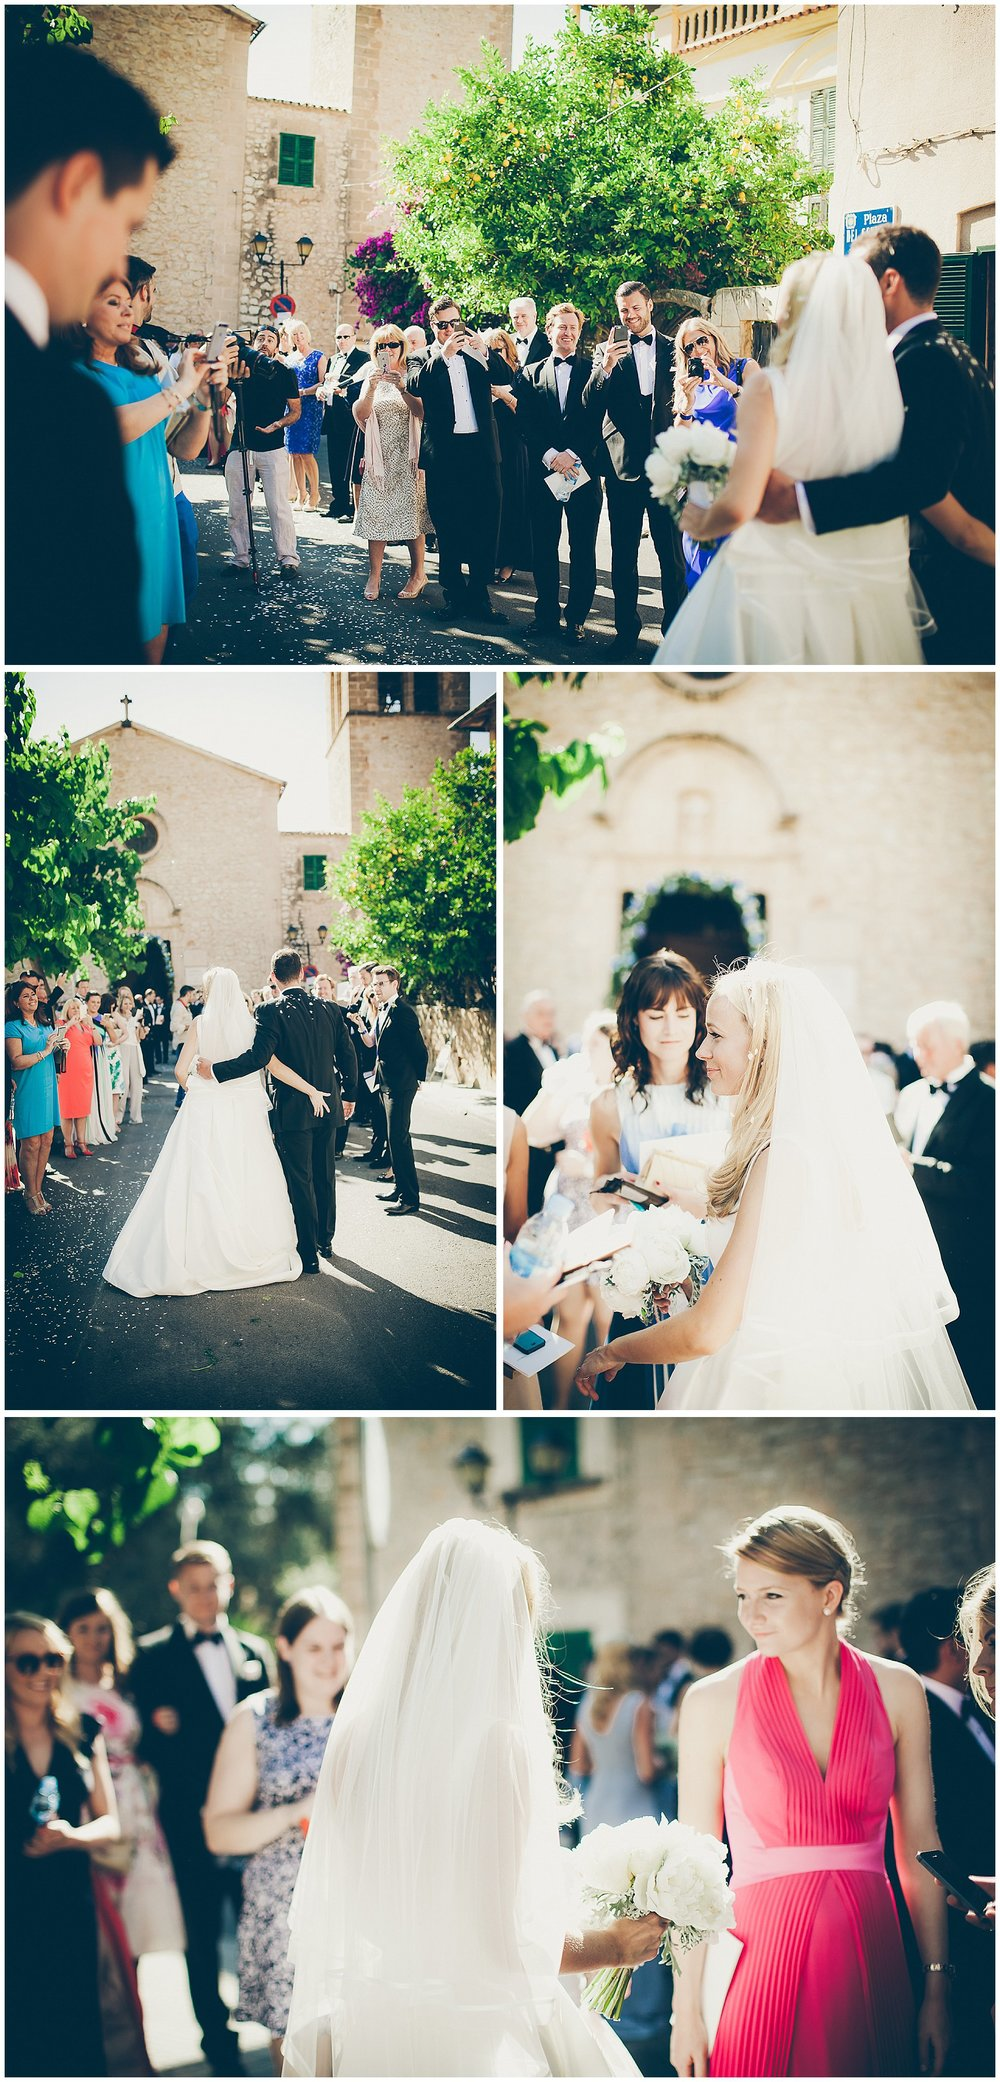 Church_VillaItalia_MallorcaWedding_FionaClairPhotography-110.jpg